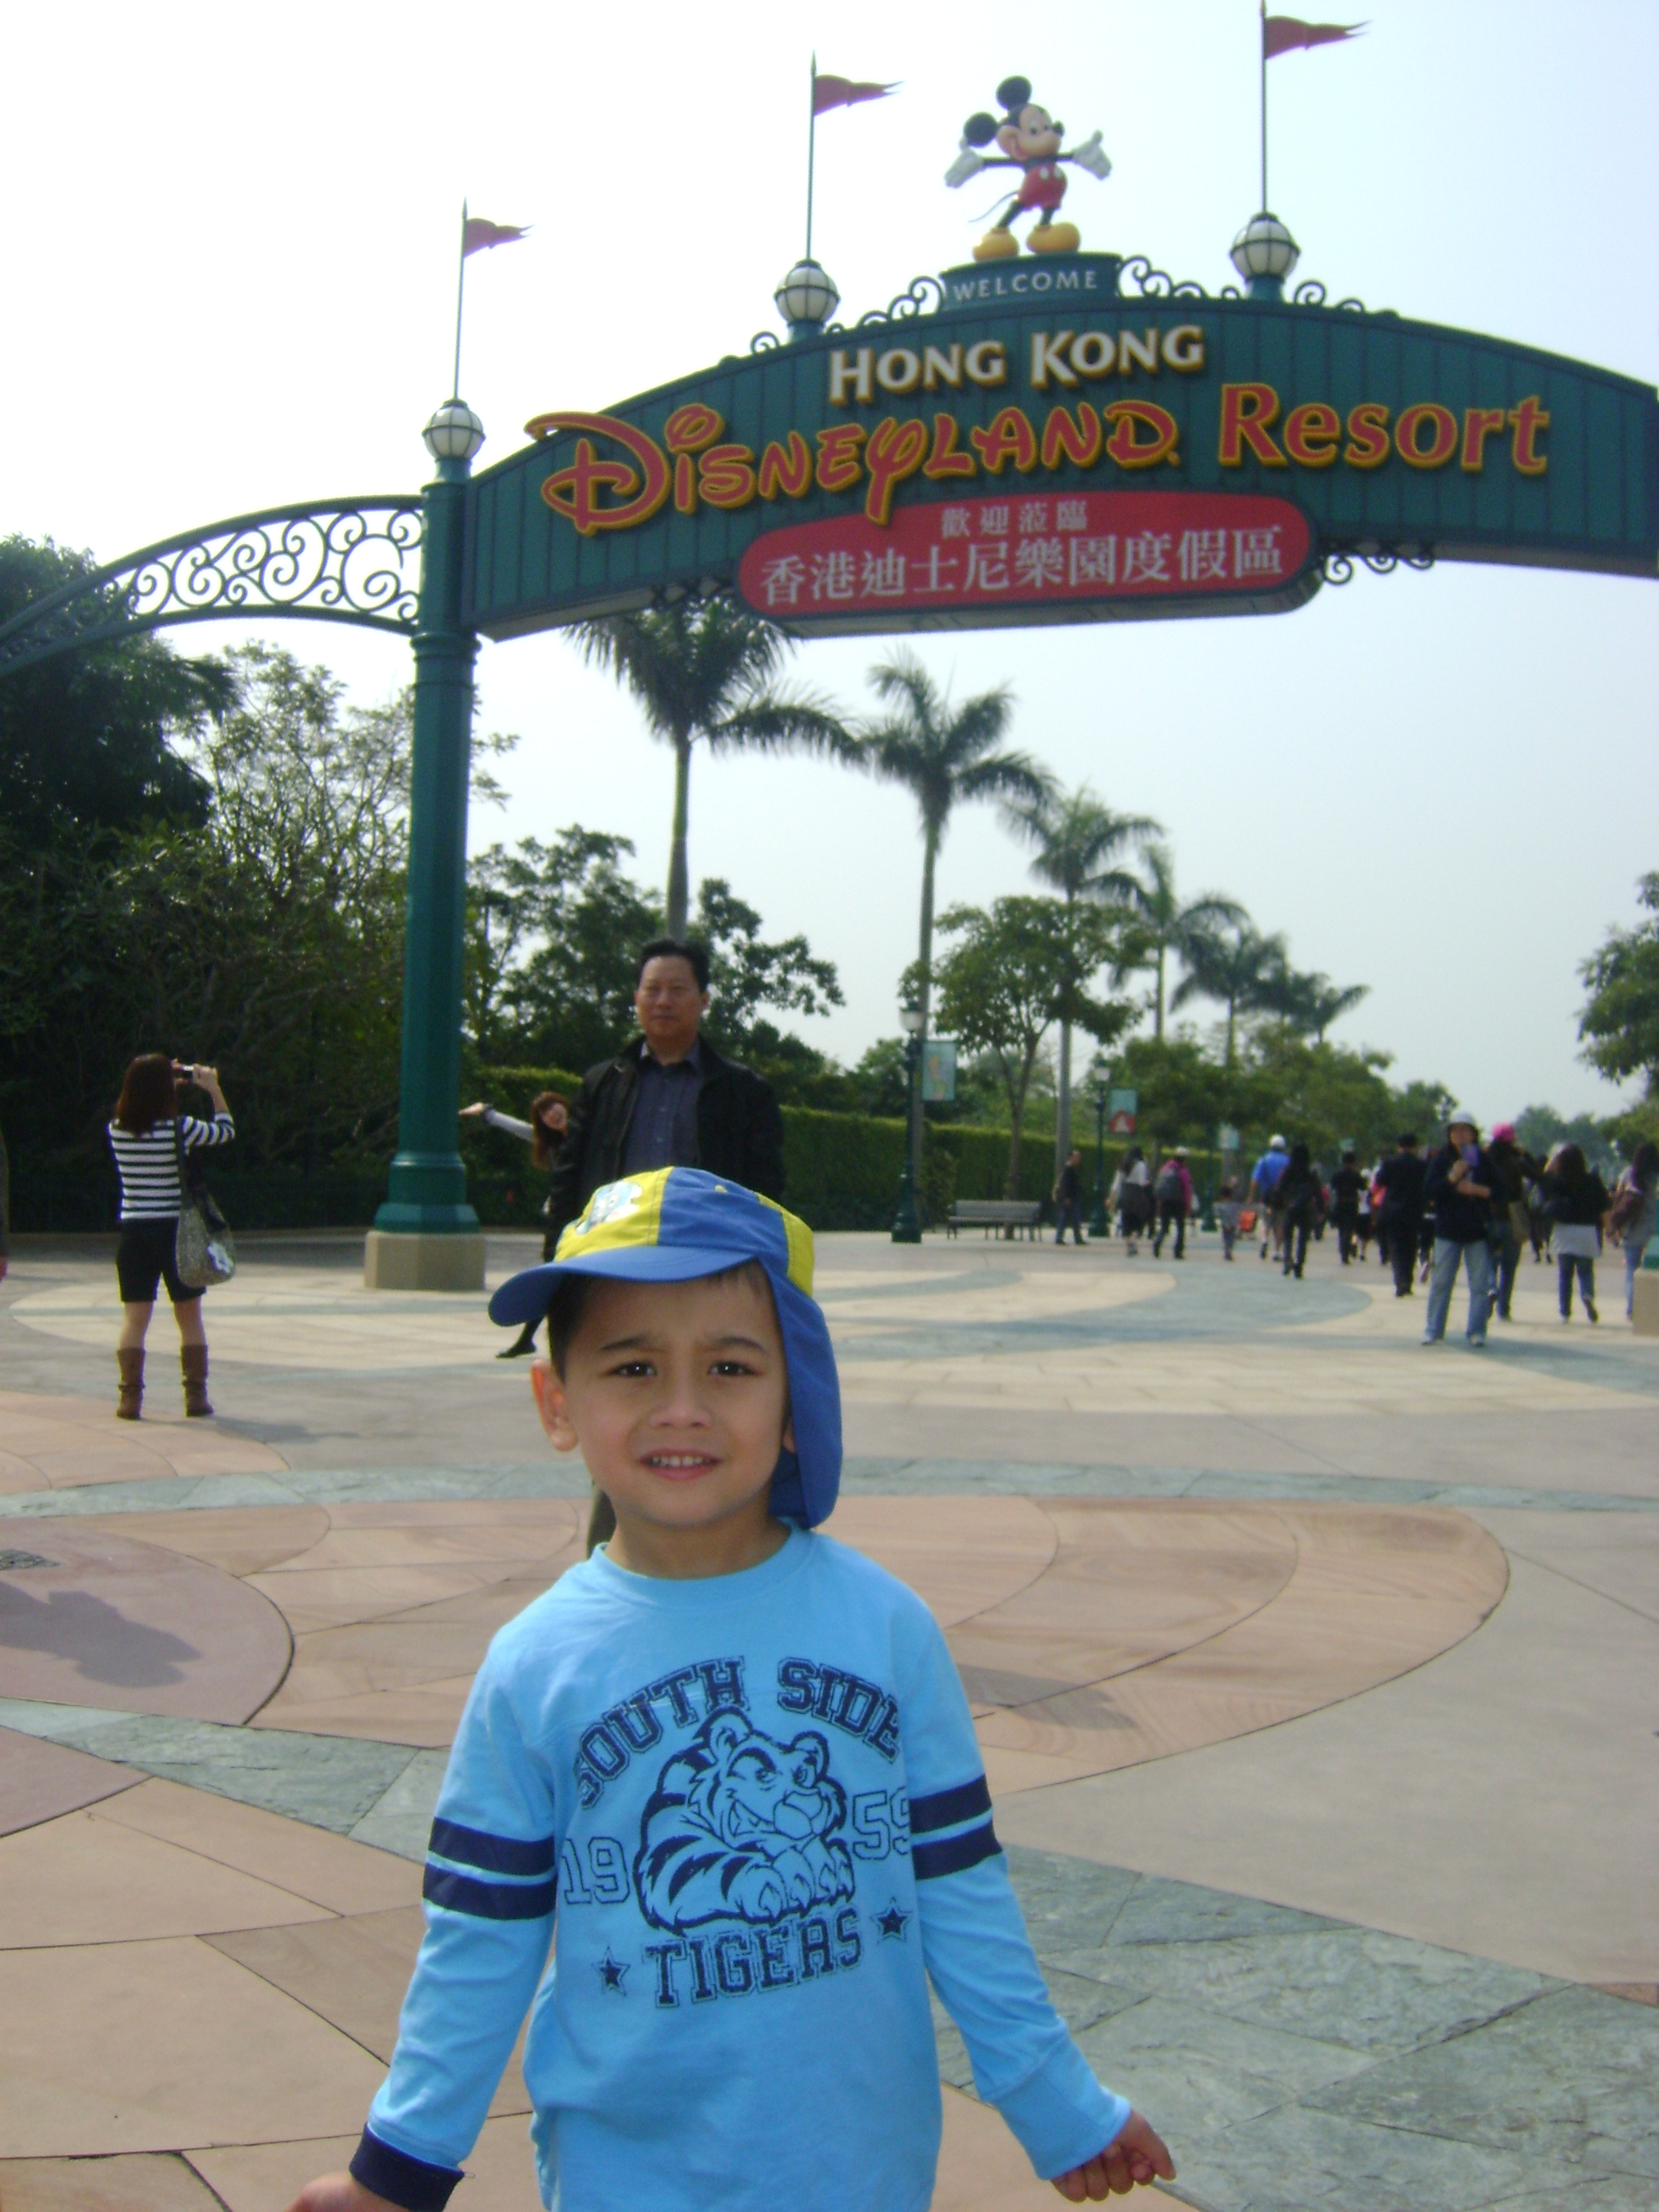 Hongkong Disneyland entrance